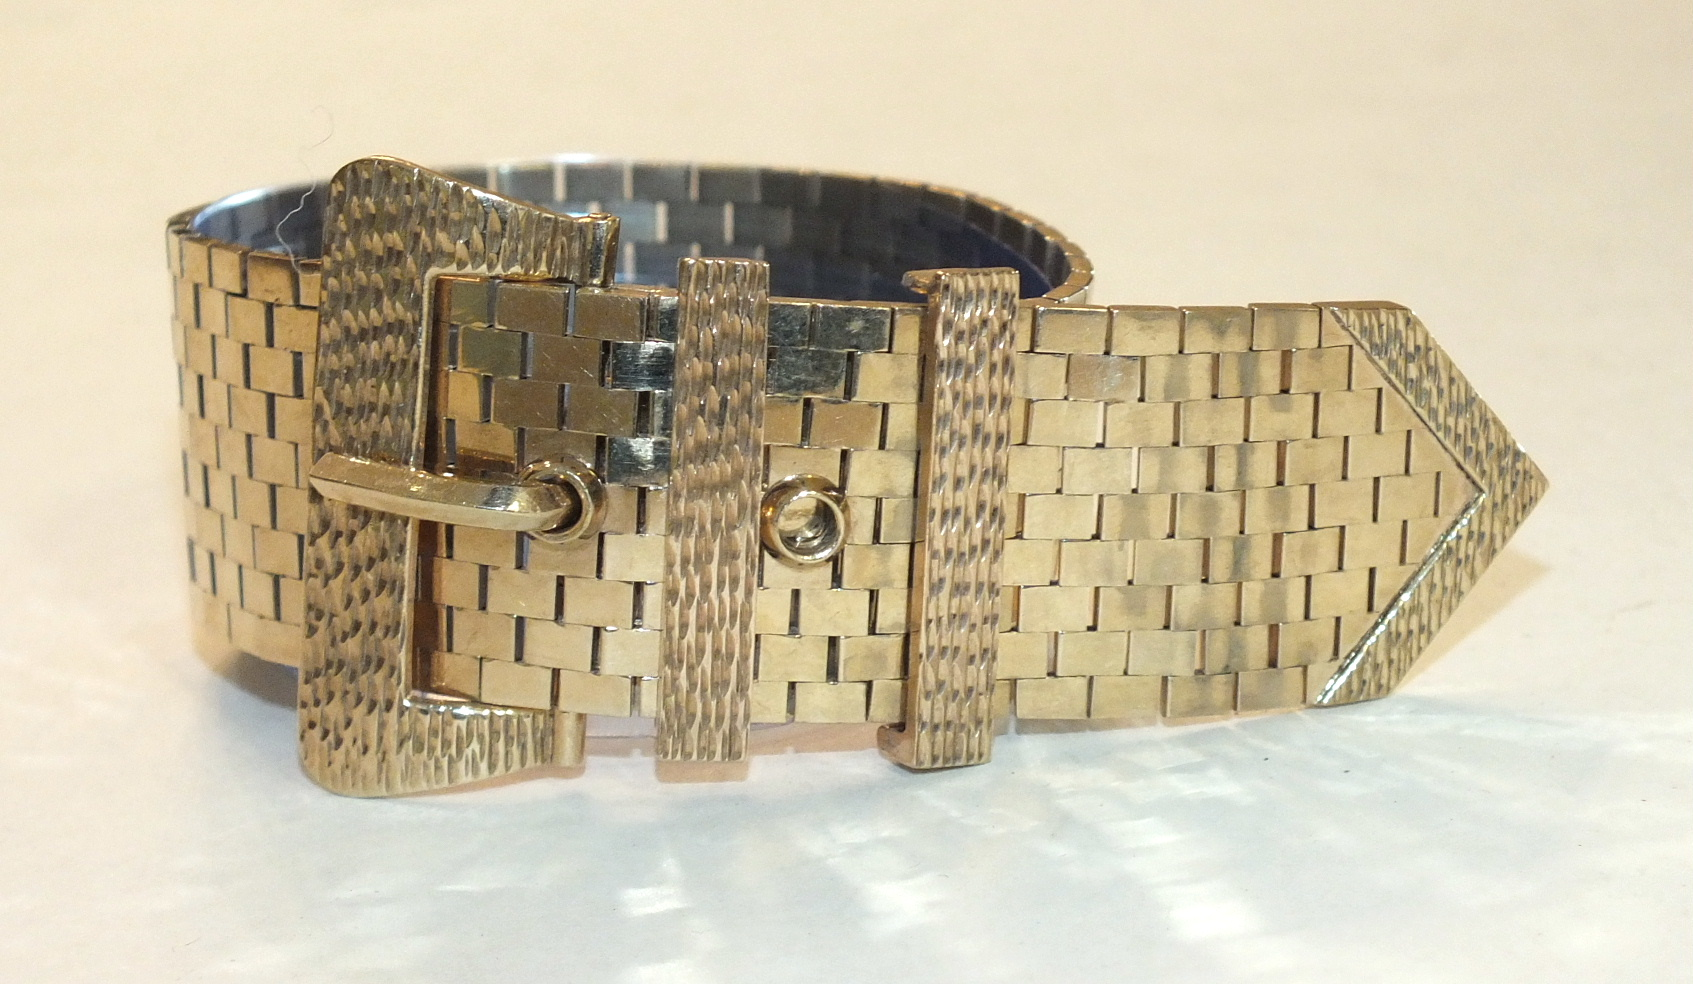 A 9ct gold brick-link wide bracelet in the form of a belt and buckle, with textured buckle and two